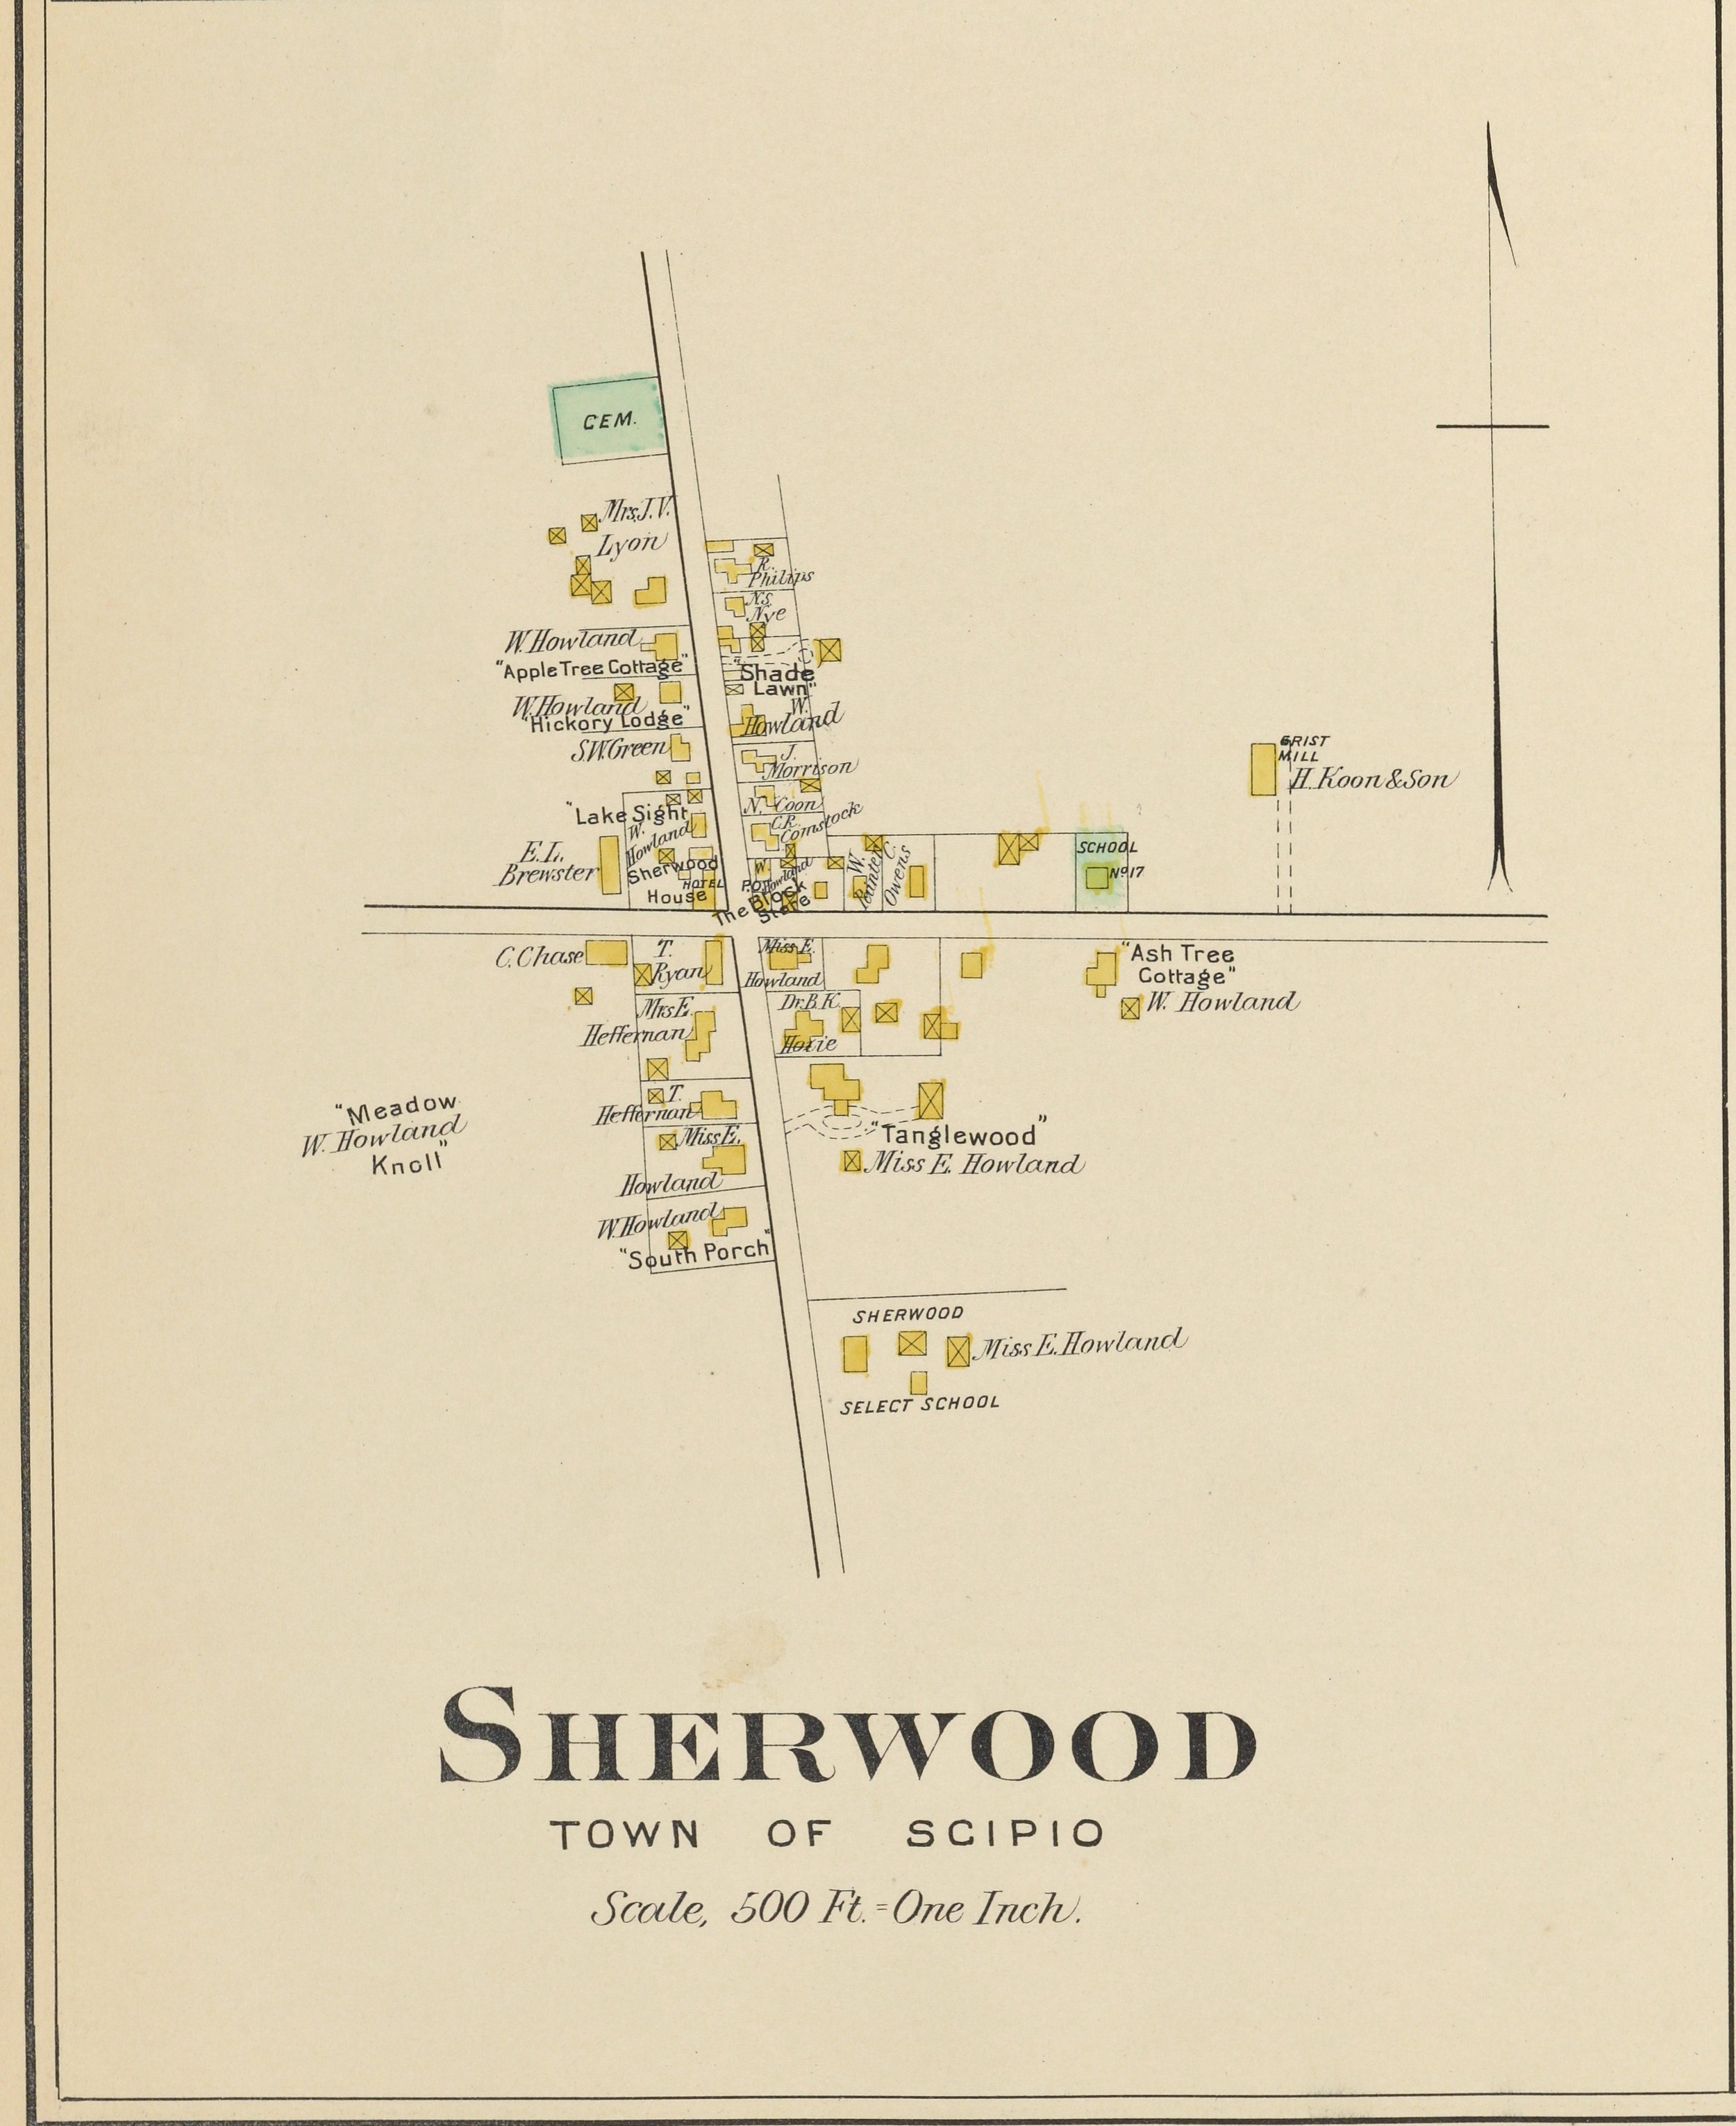 Sherwood Map (click to enlarge)